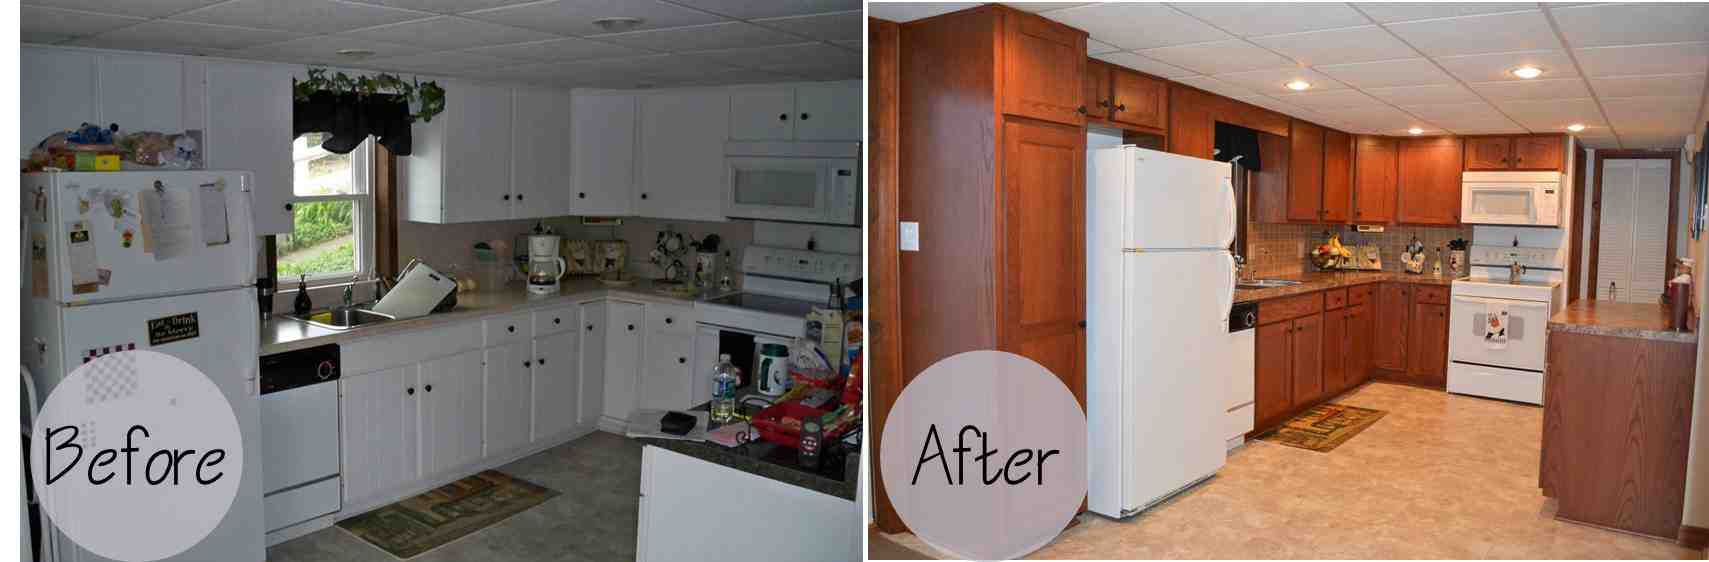 Kitchen cabinet refacing before and after photos decor for Refinishing kitchen cabinets before and after